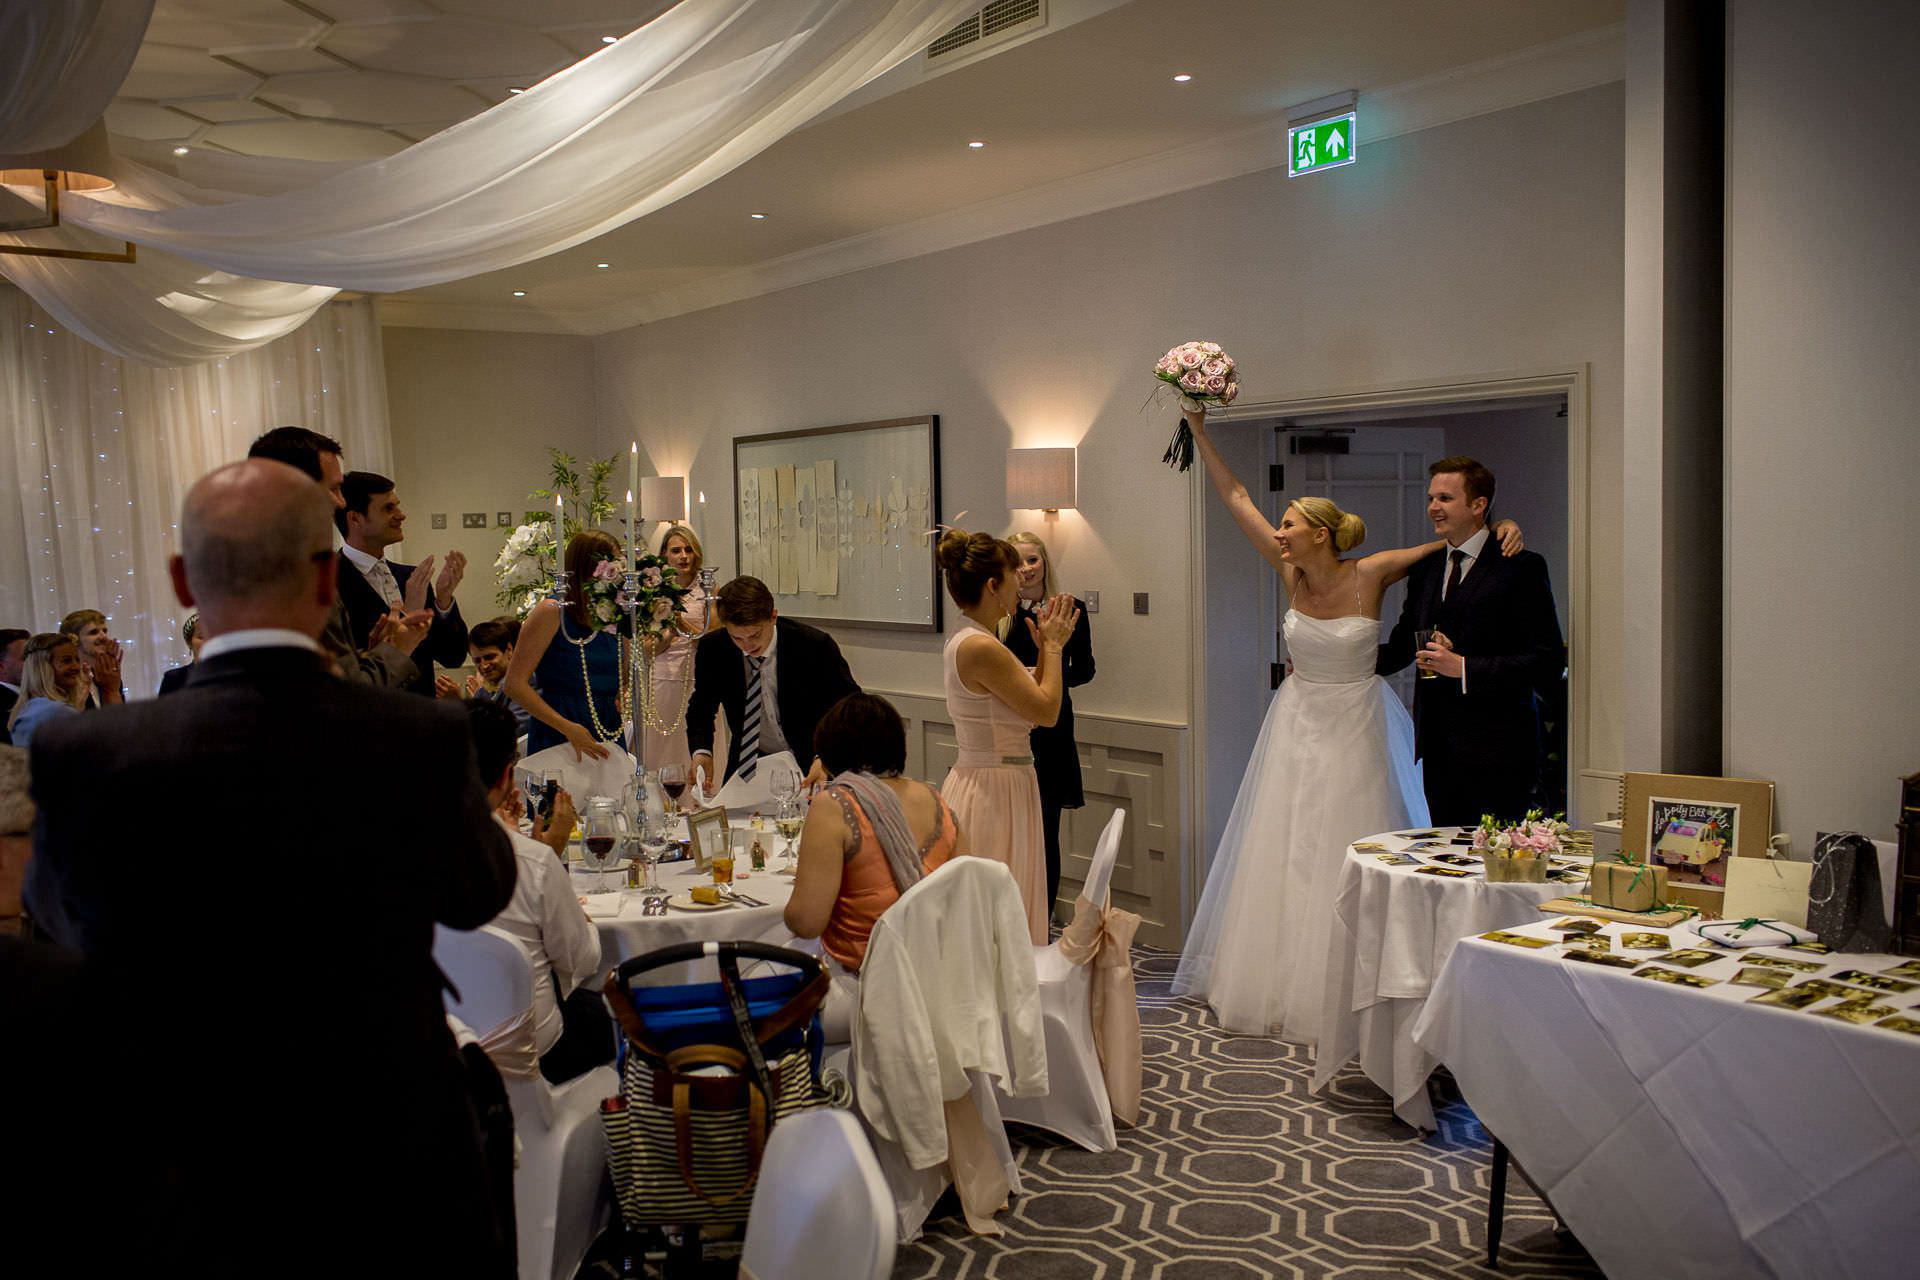 Wotton House wedding bride and groom enter the room